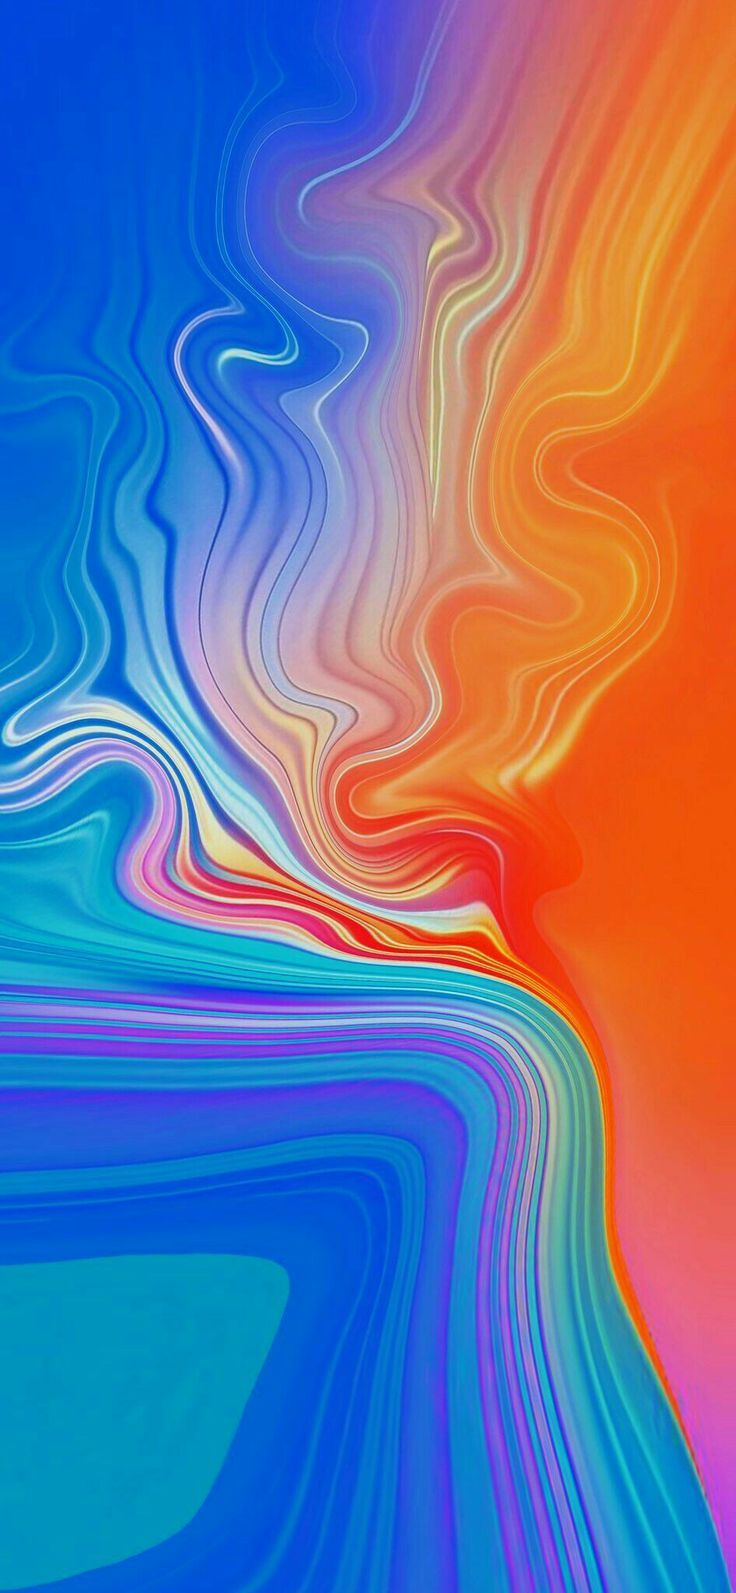 Apple iOS 14 Wallpapers - KoLPaPer - Awesome Free HD ...